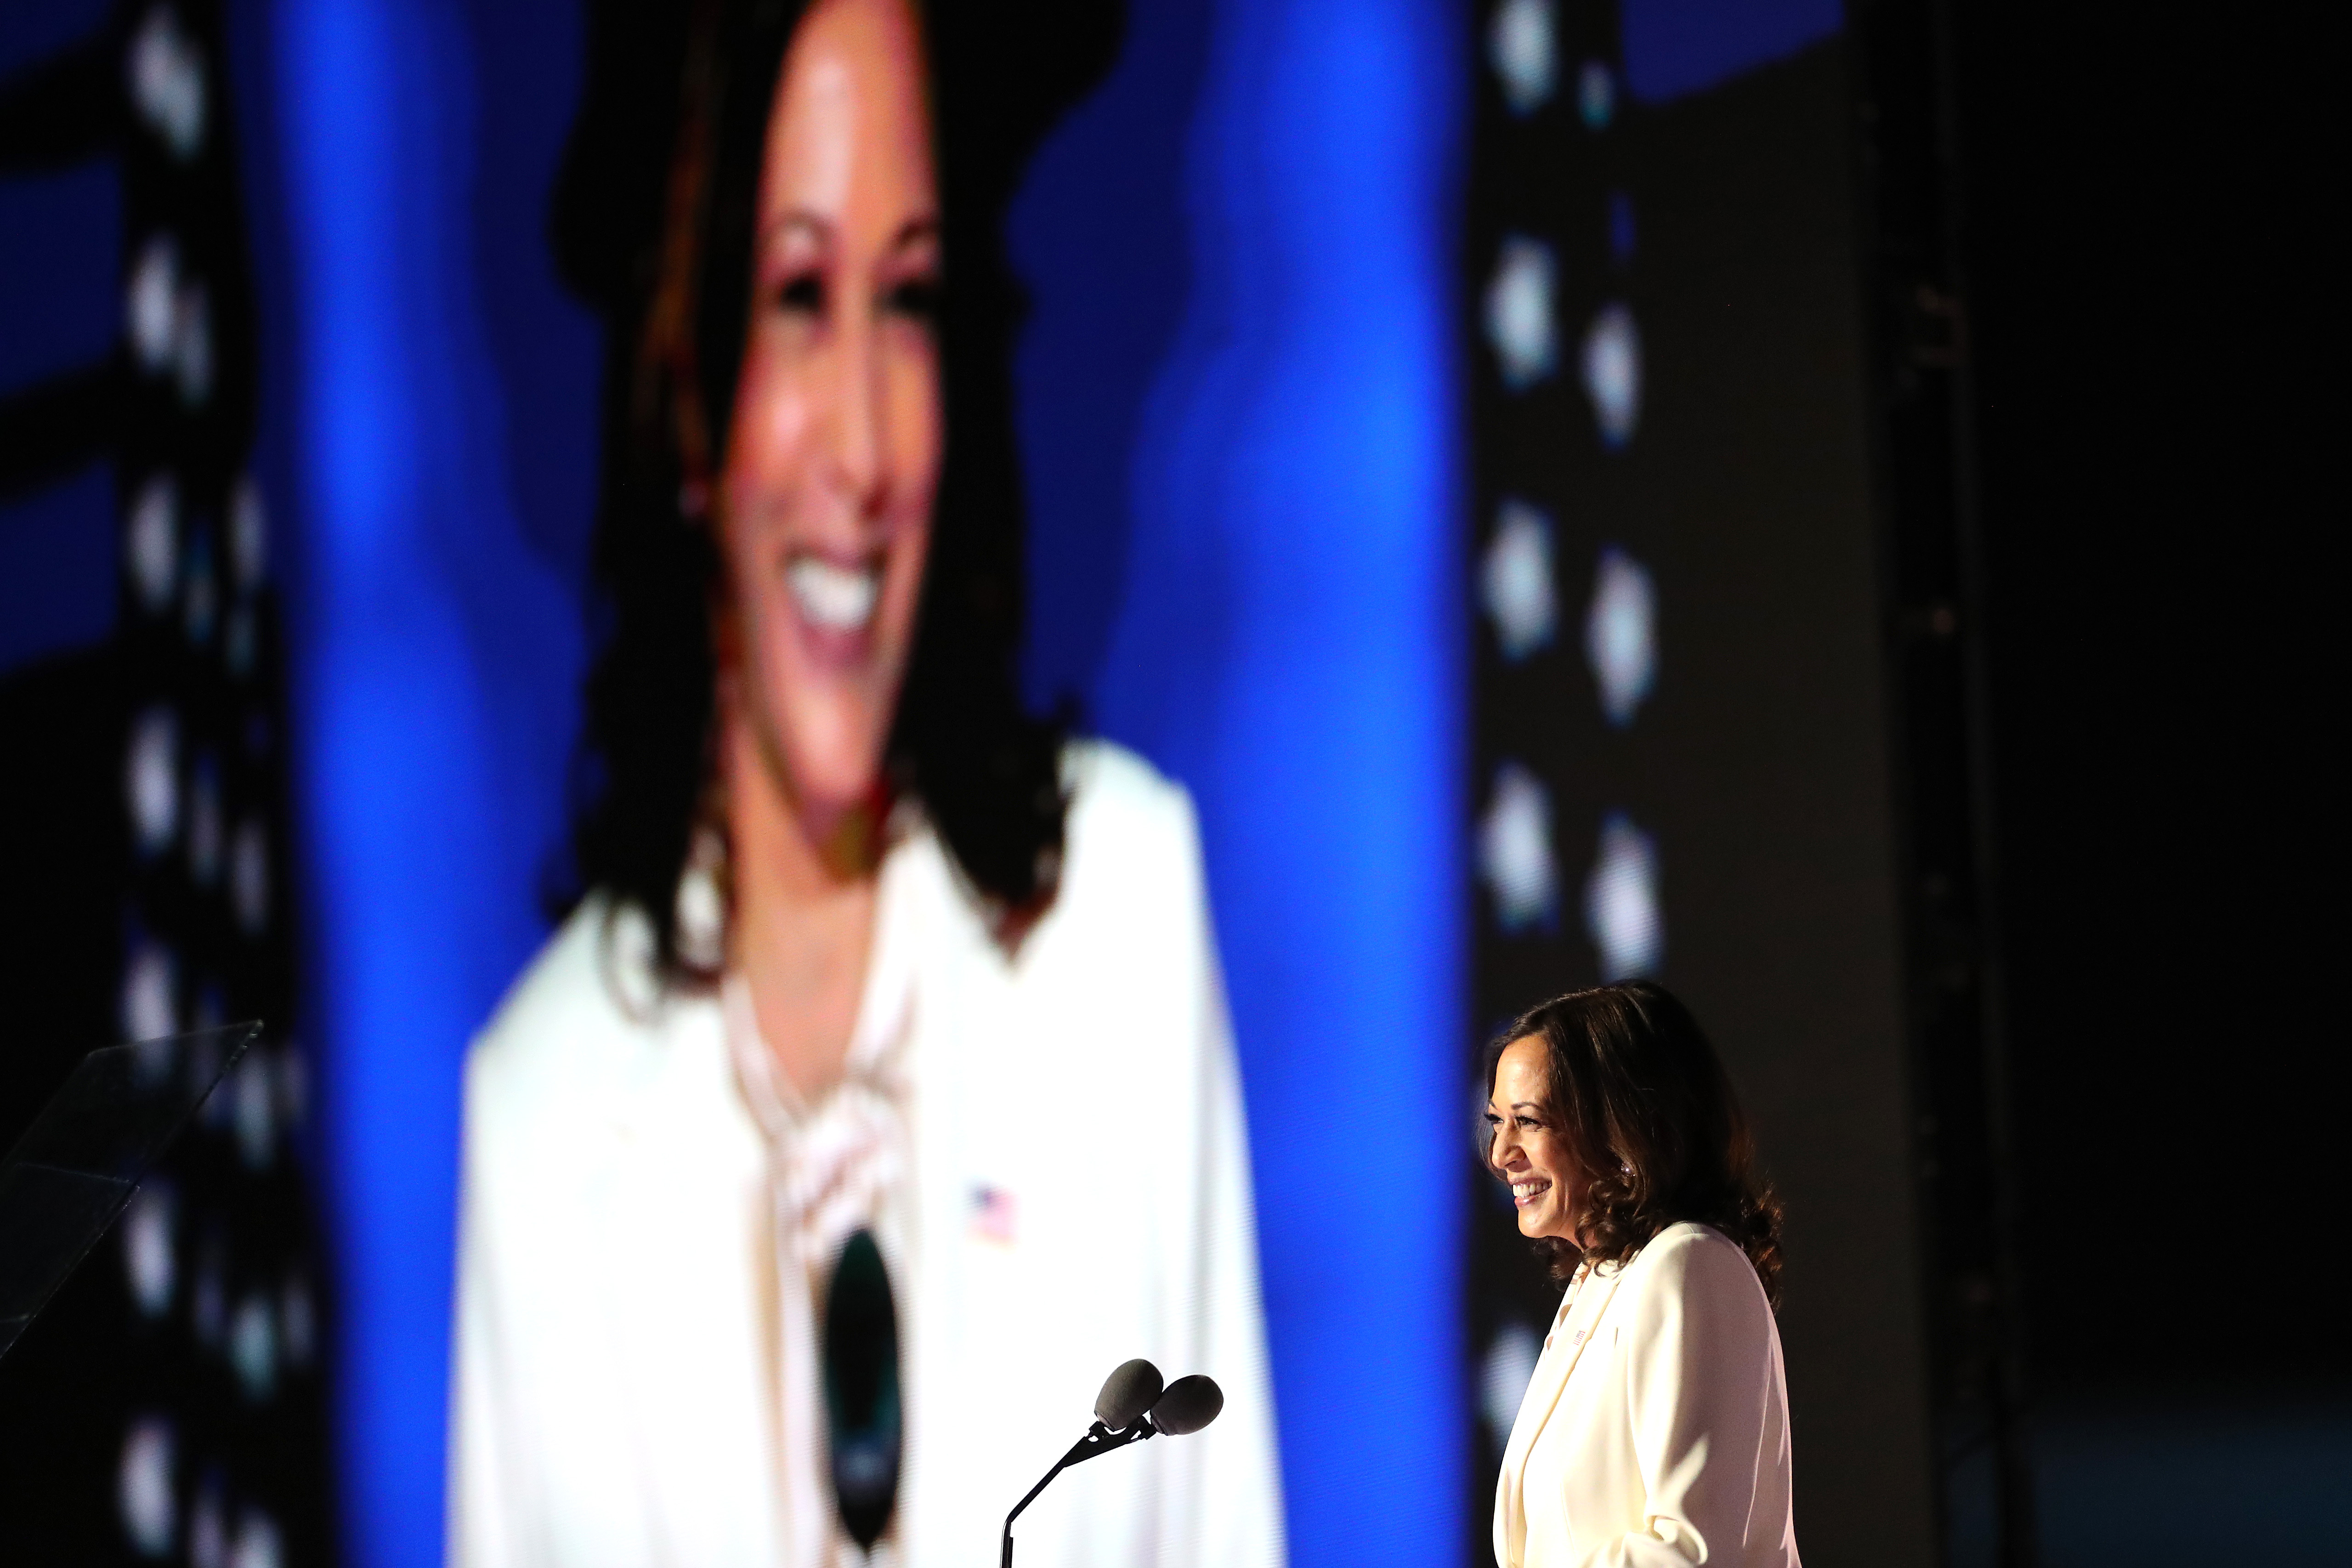 Vice President-elect Kamala Harris speaks on stage at the Chase Center in Wilmington, Del. on Nov. 07, 2020.